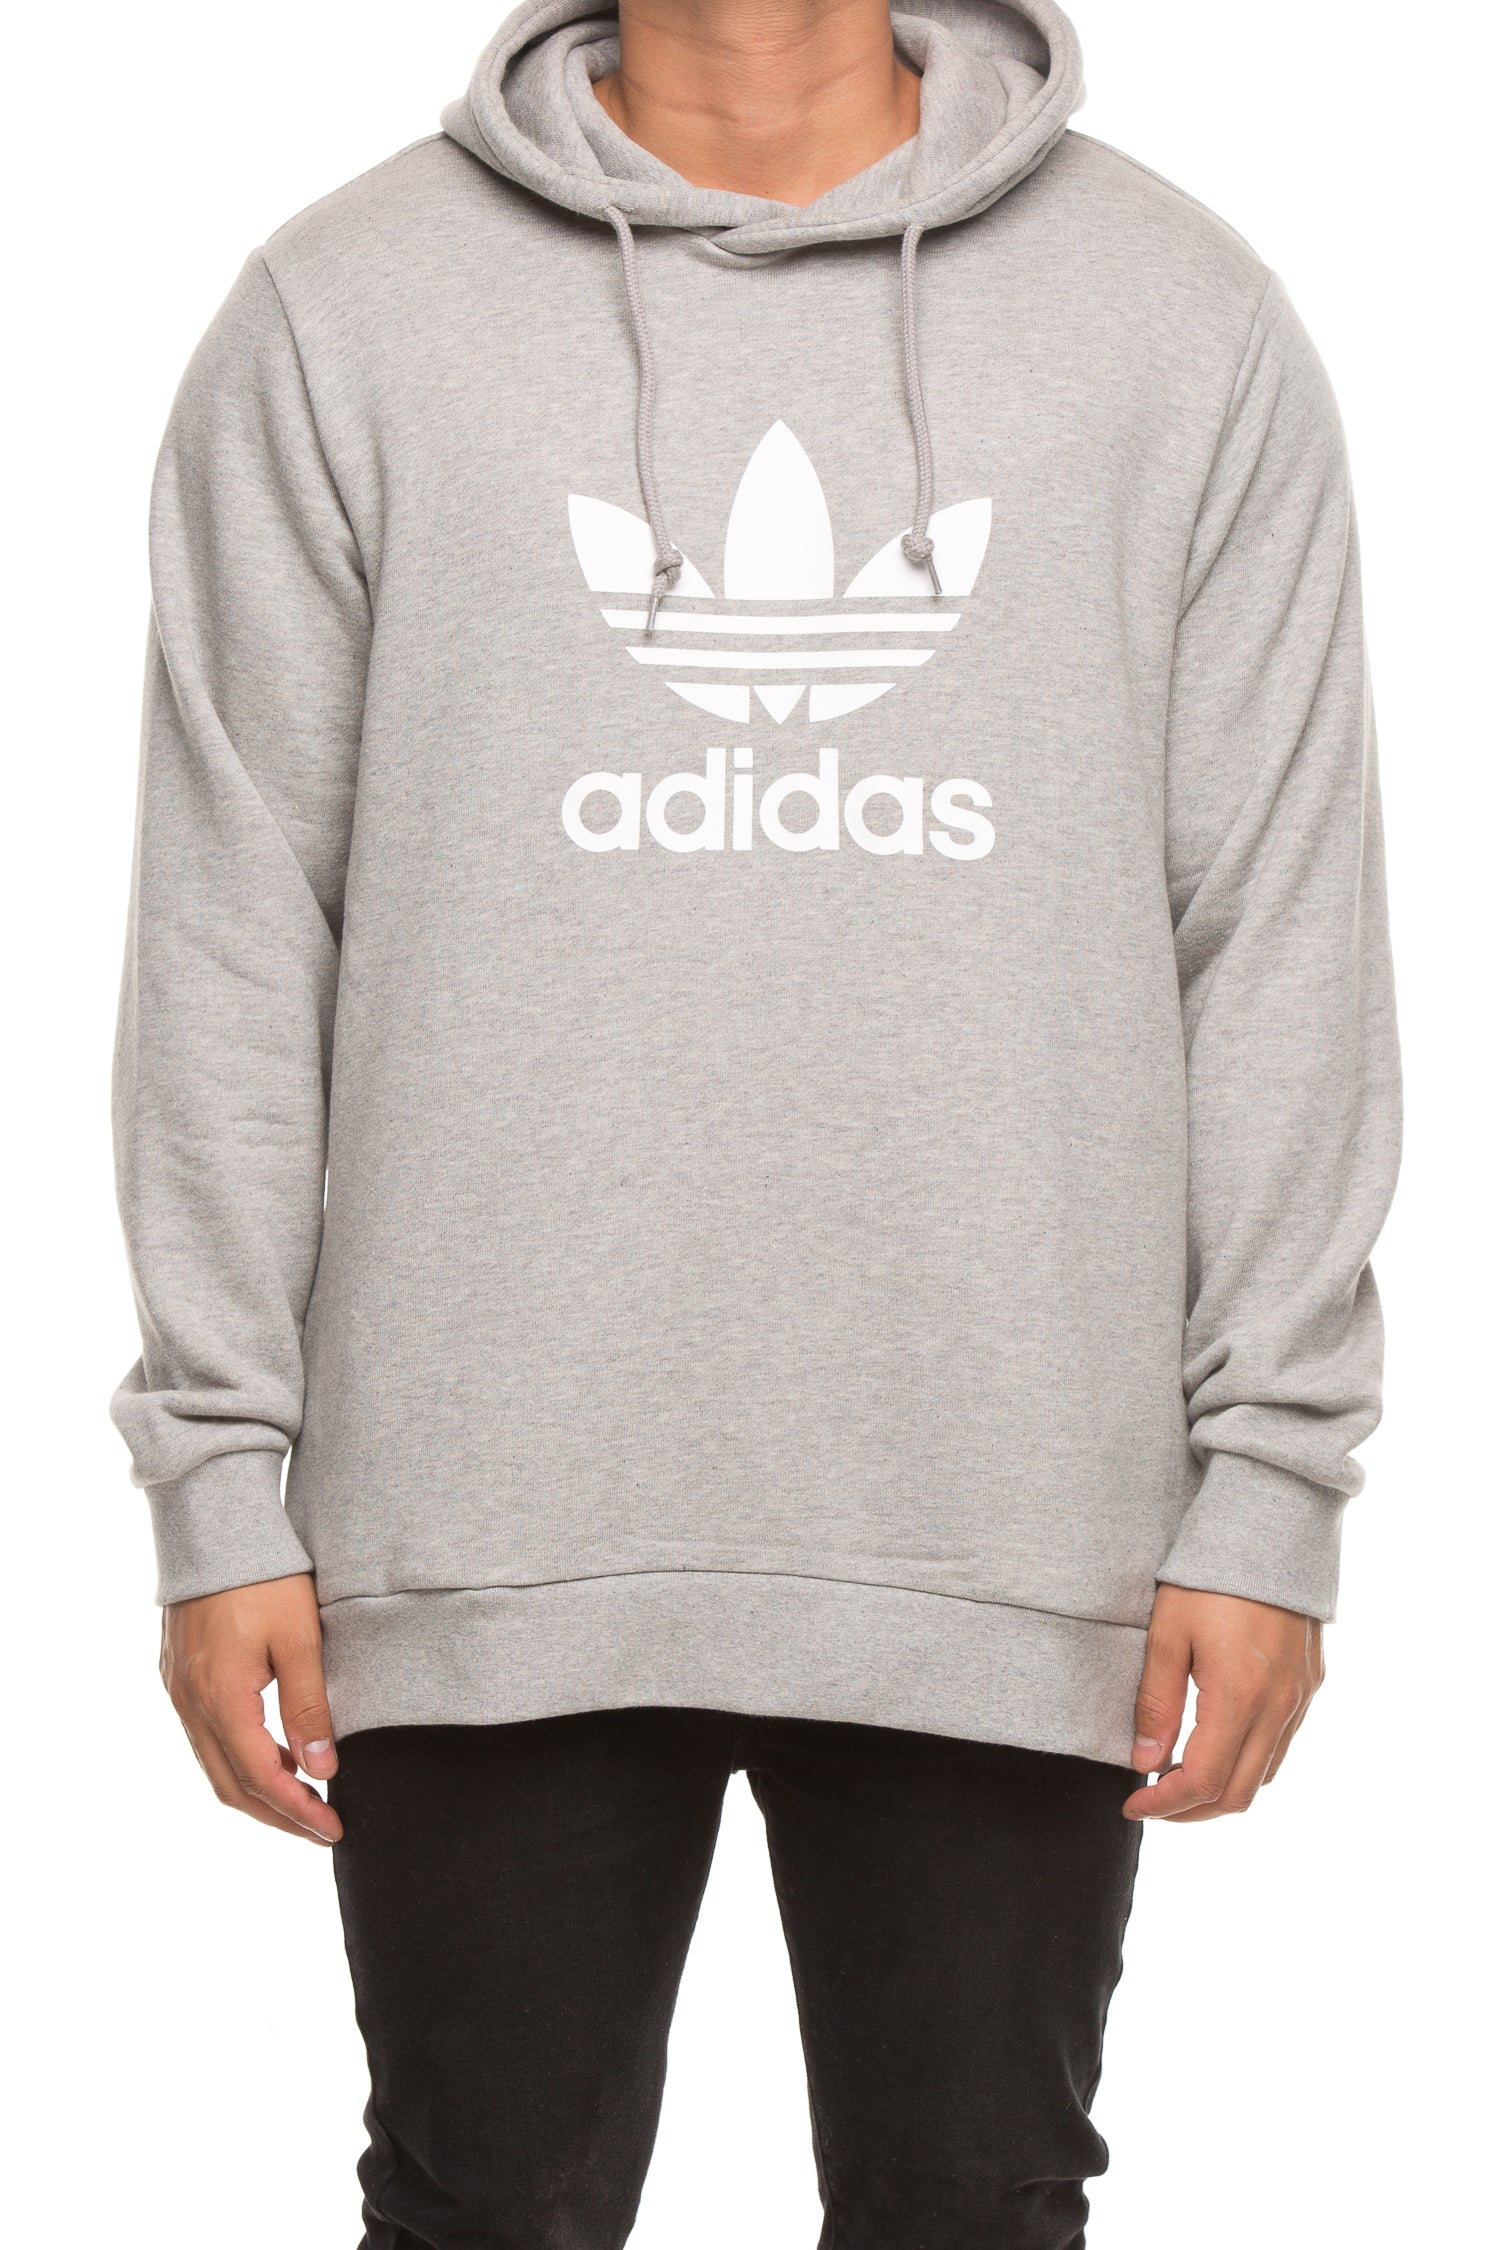 adidas Originals Womens Trefoil Hoodie Grey Heather